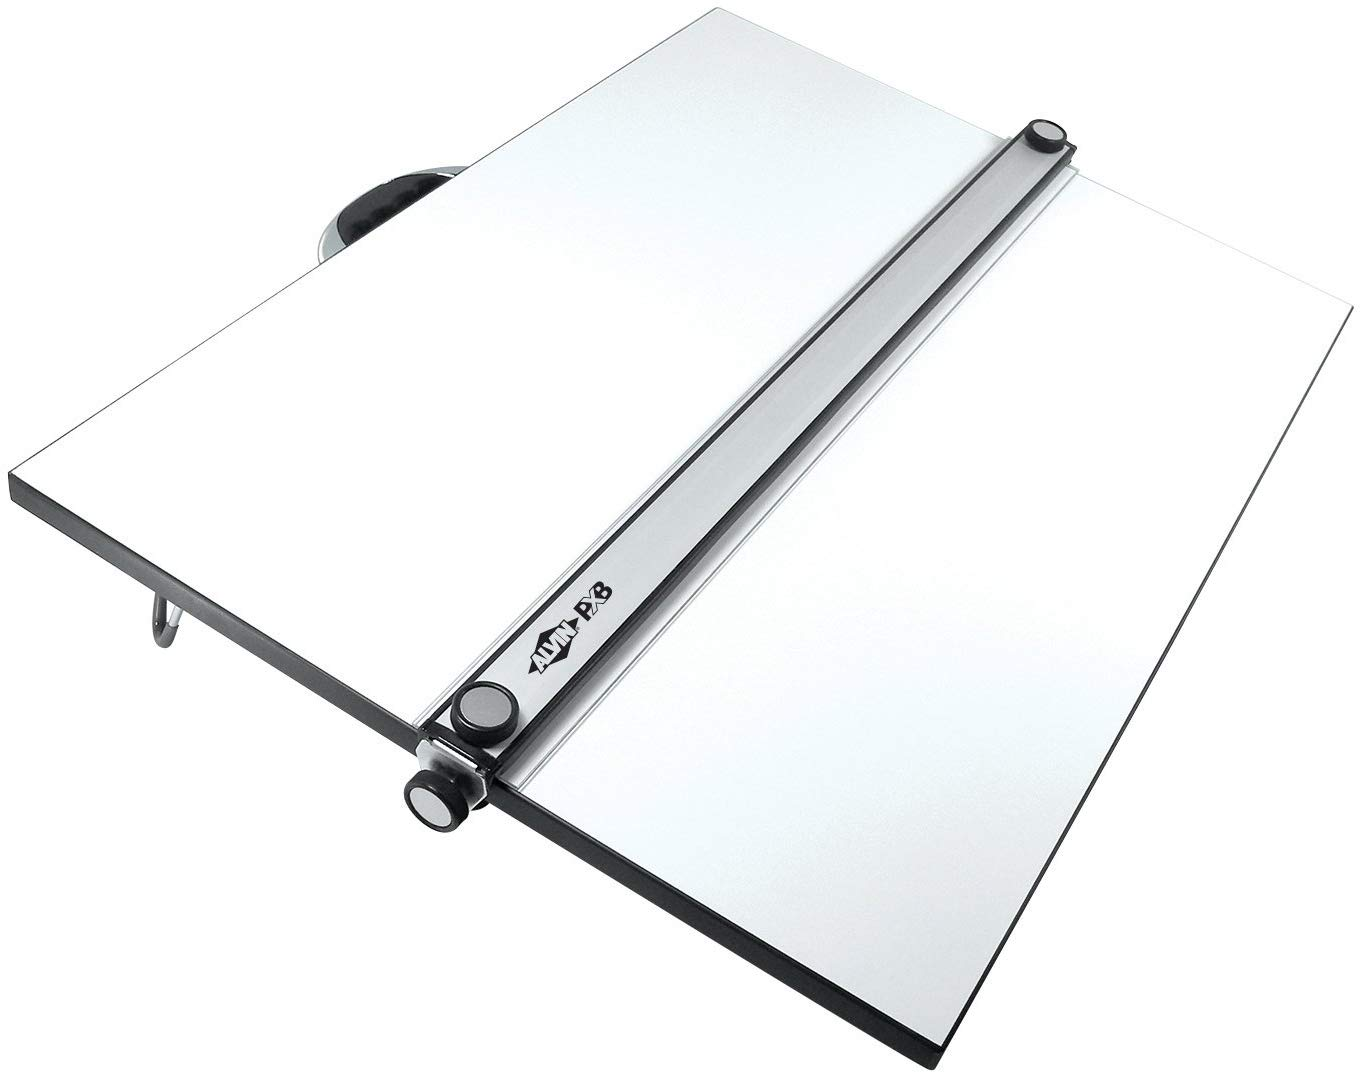 Alvin Portable Parallel Straightedge Board | 10 Must Have Drawing Board for Architects